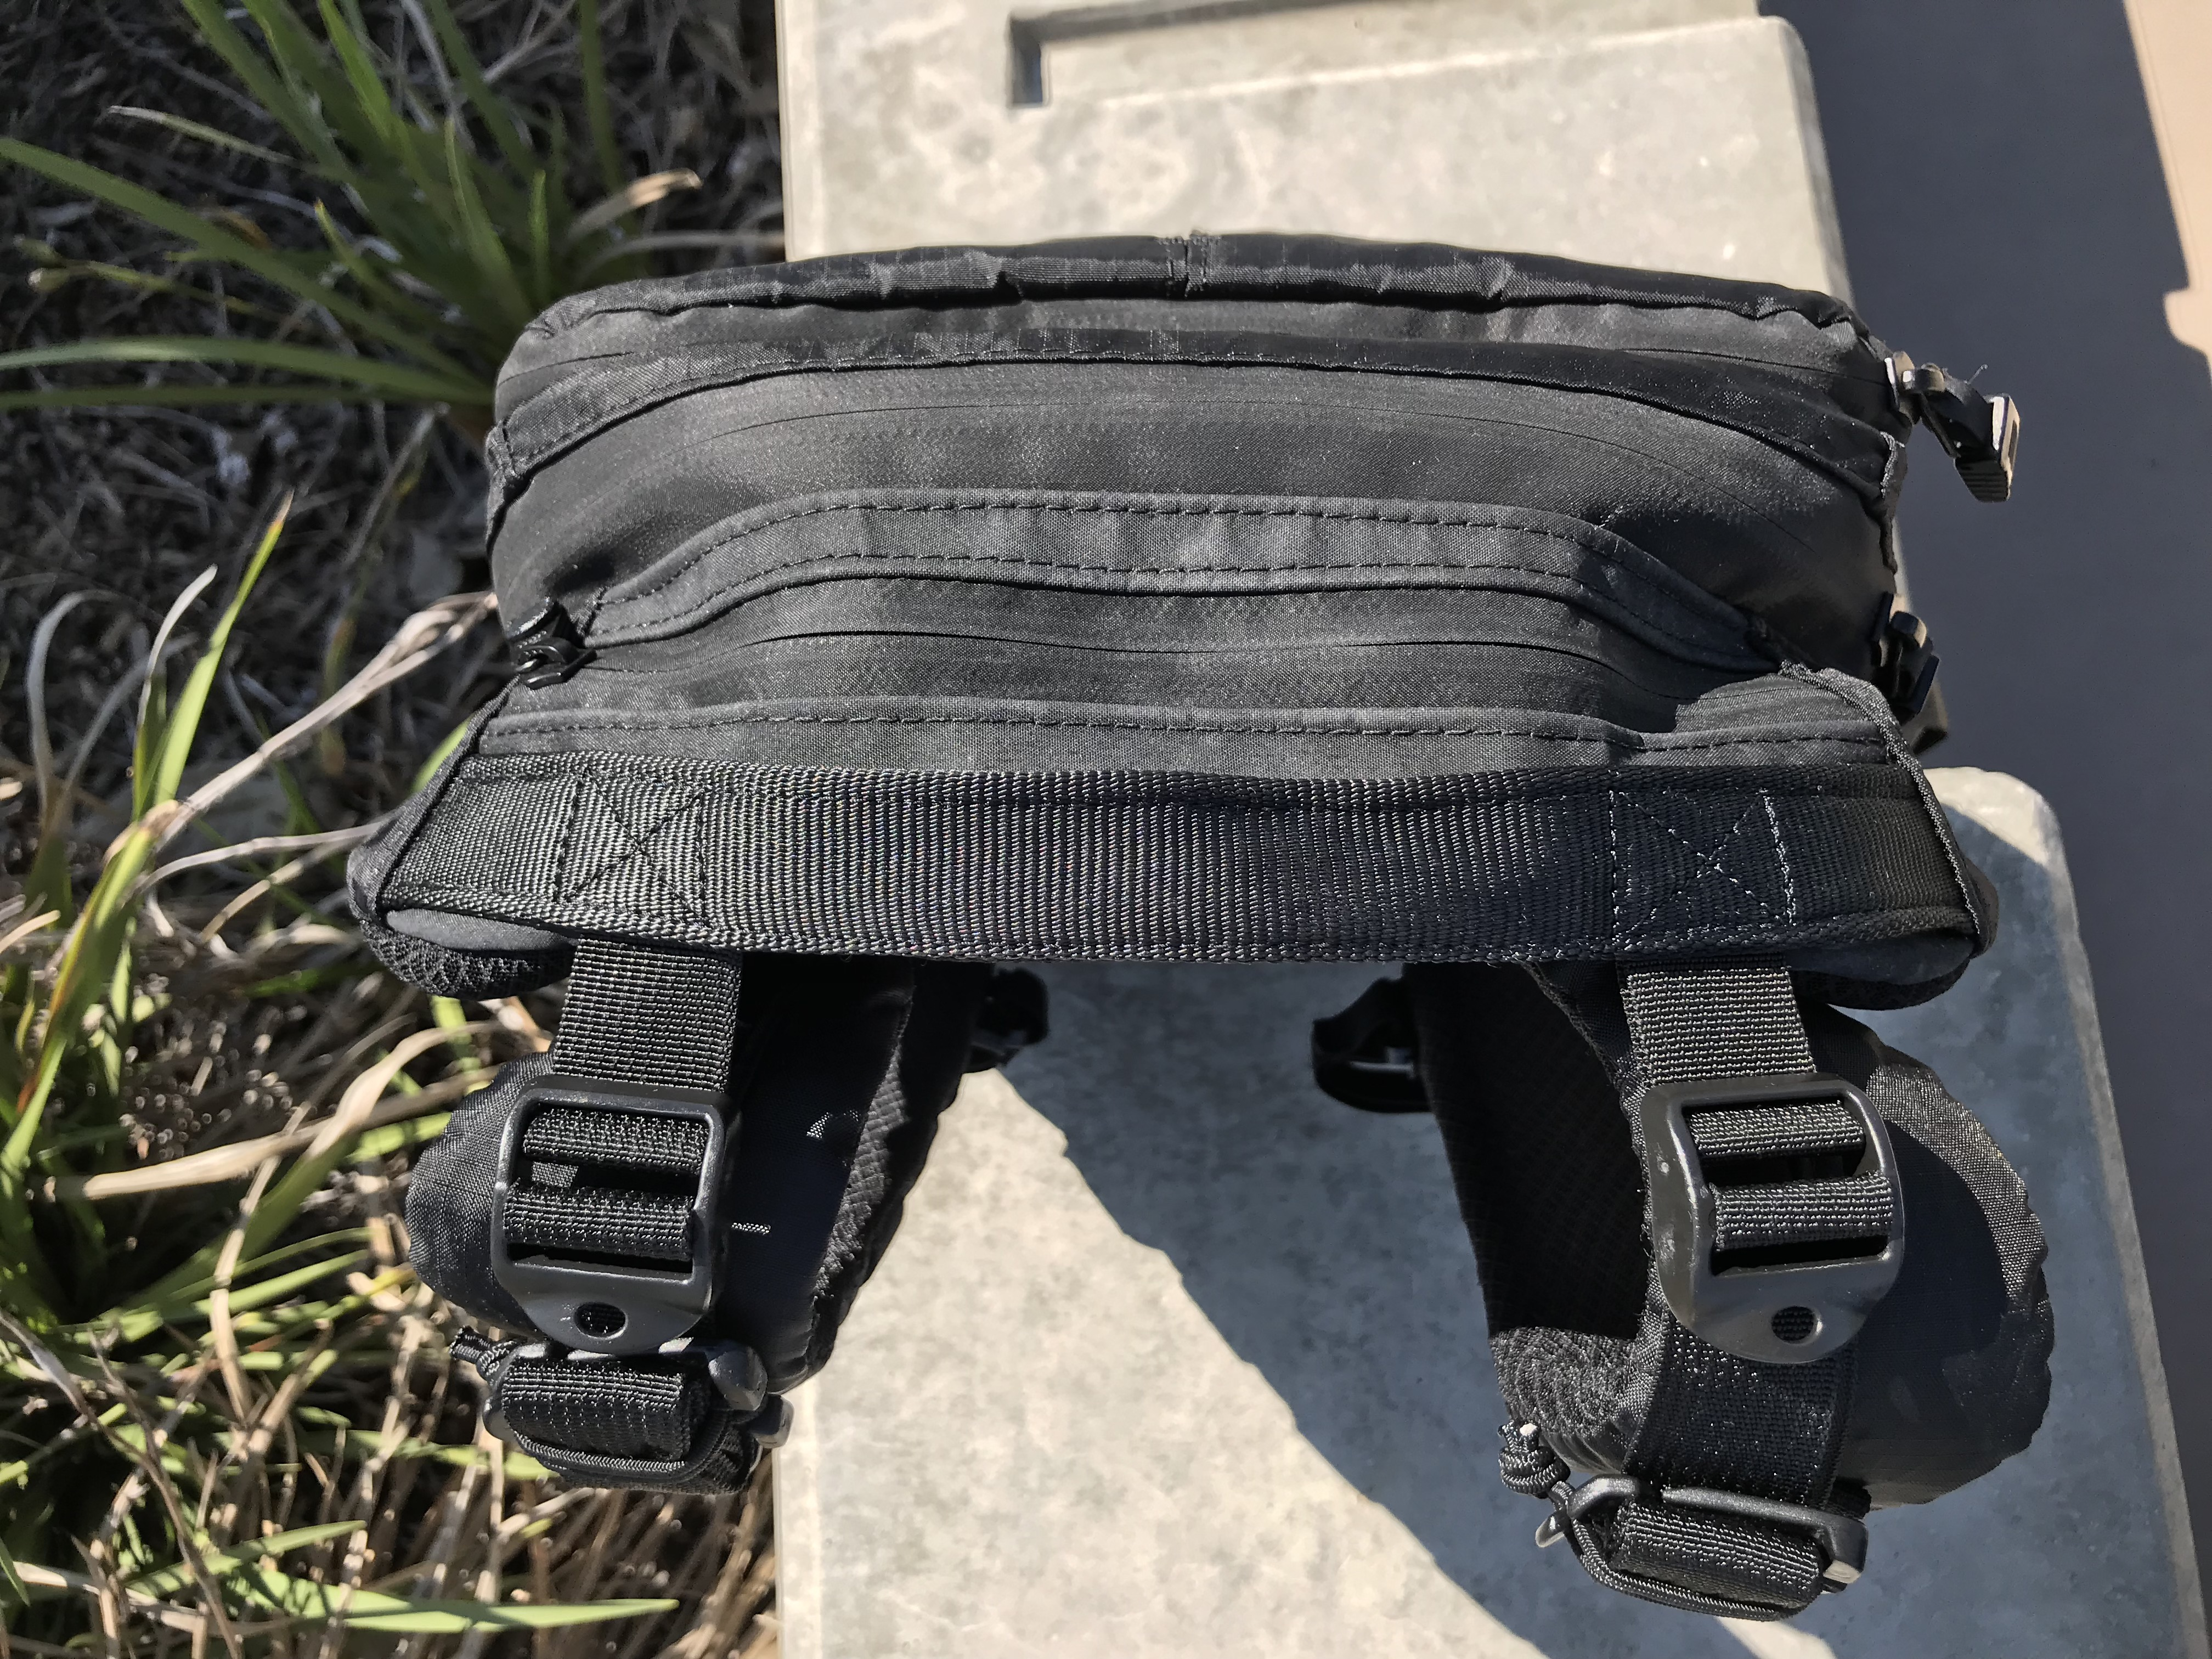 TAD Axiom 18 Review Grab Handle